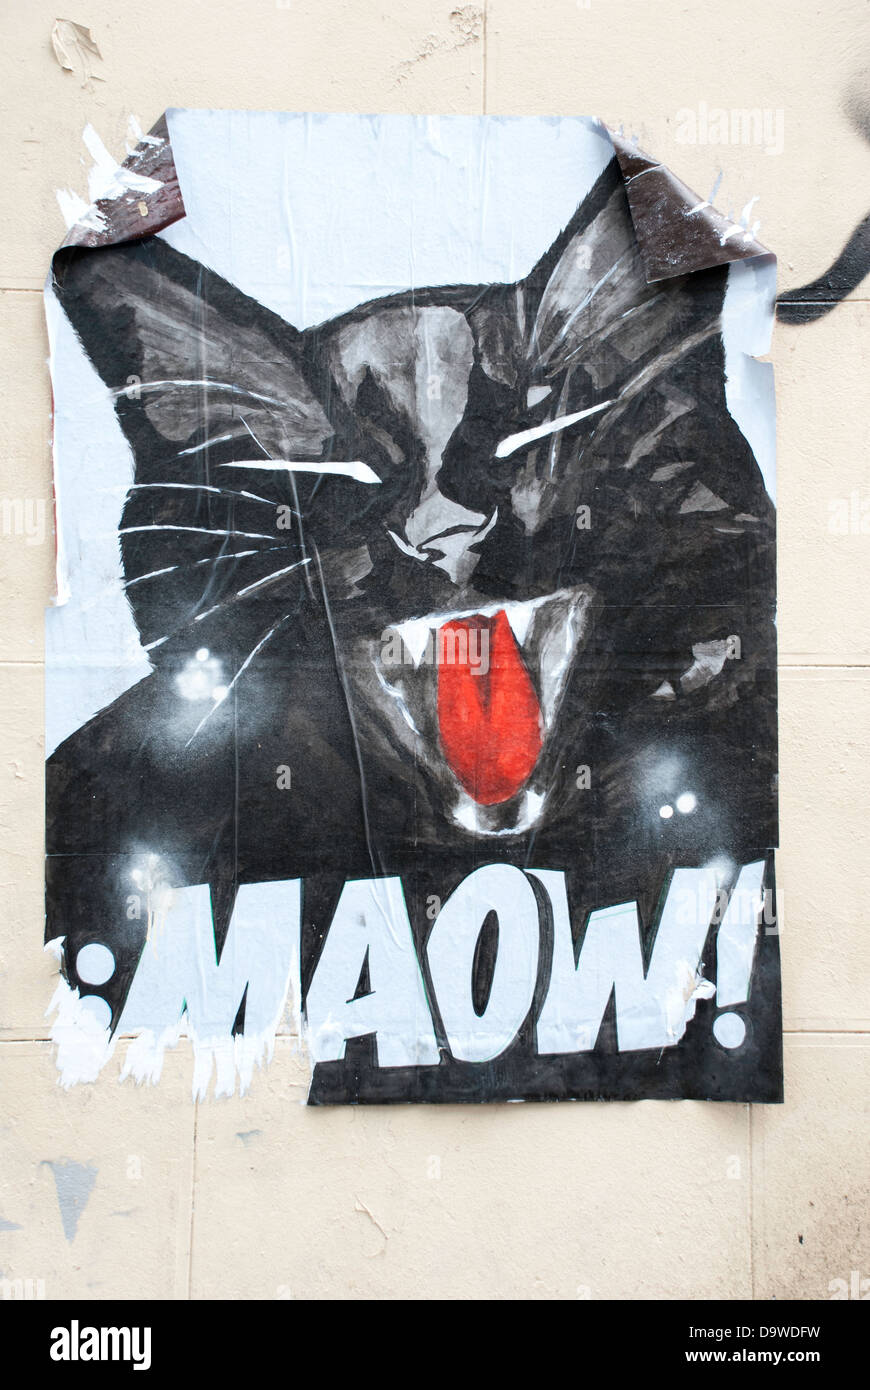 Graffiti collage art on a wall off rue foyatier paris depicting a black cat saying maow